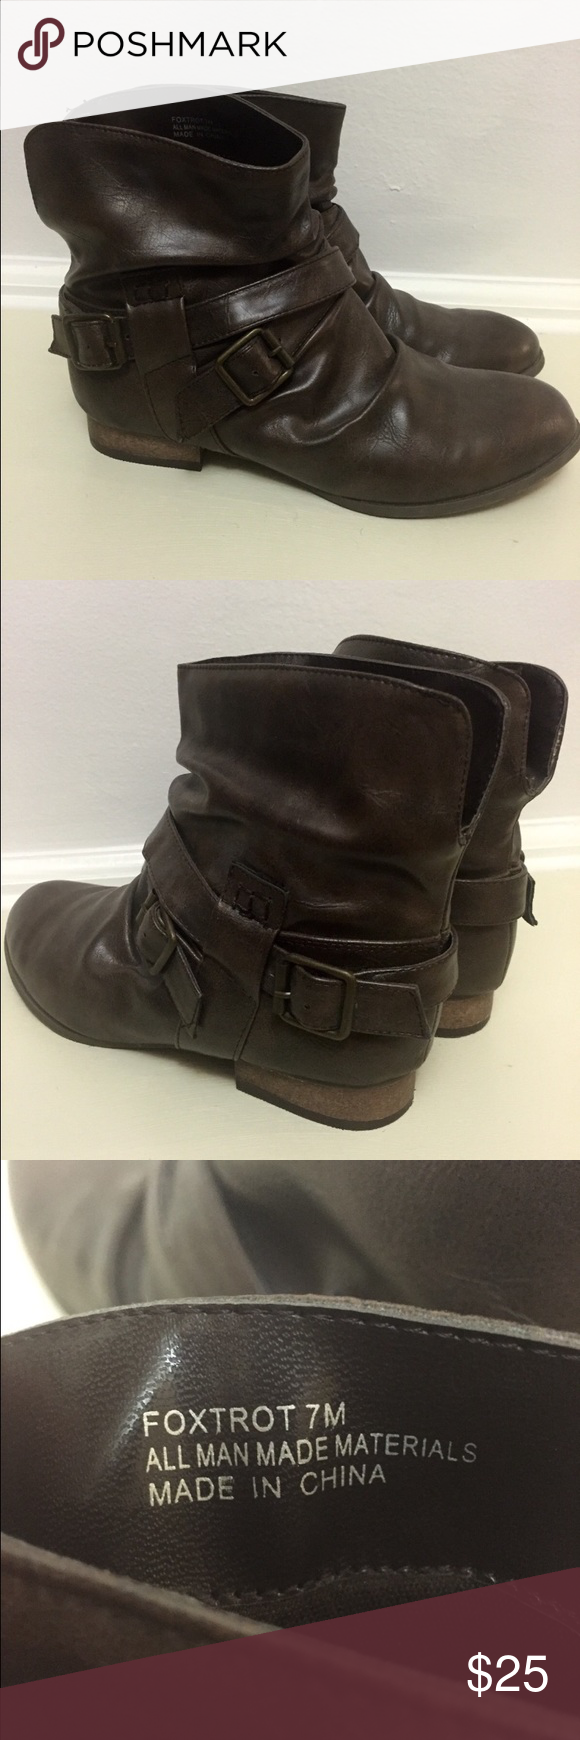 Diba Foxtrot Brown Ankle Boots Bootie 7 Diba Foxtrot Brown Ankle Boots Bootie 7. Decorative Side Buckles. Zip Up On The Side. Diba Shoes